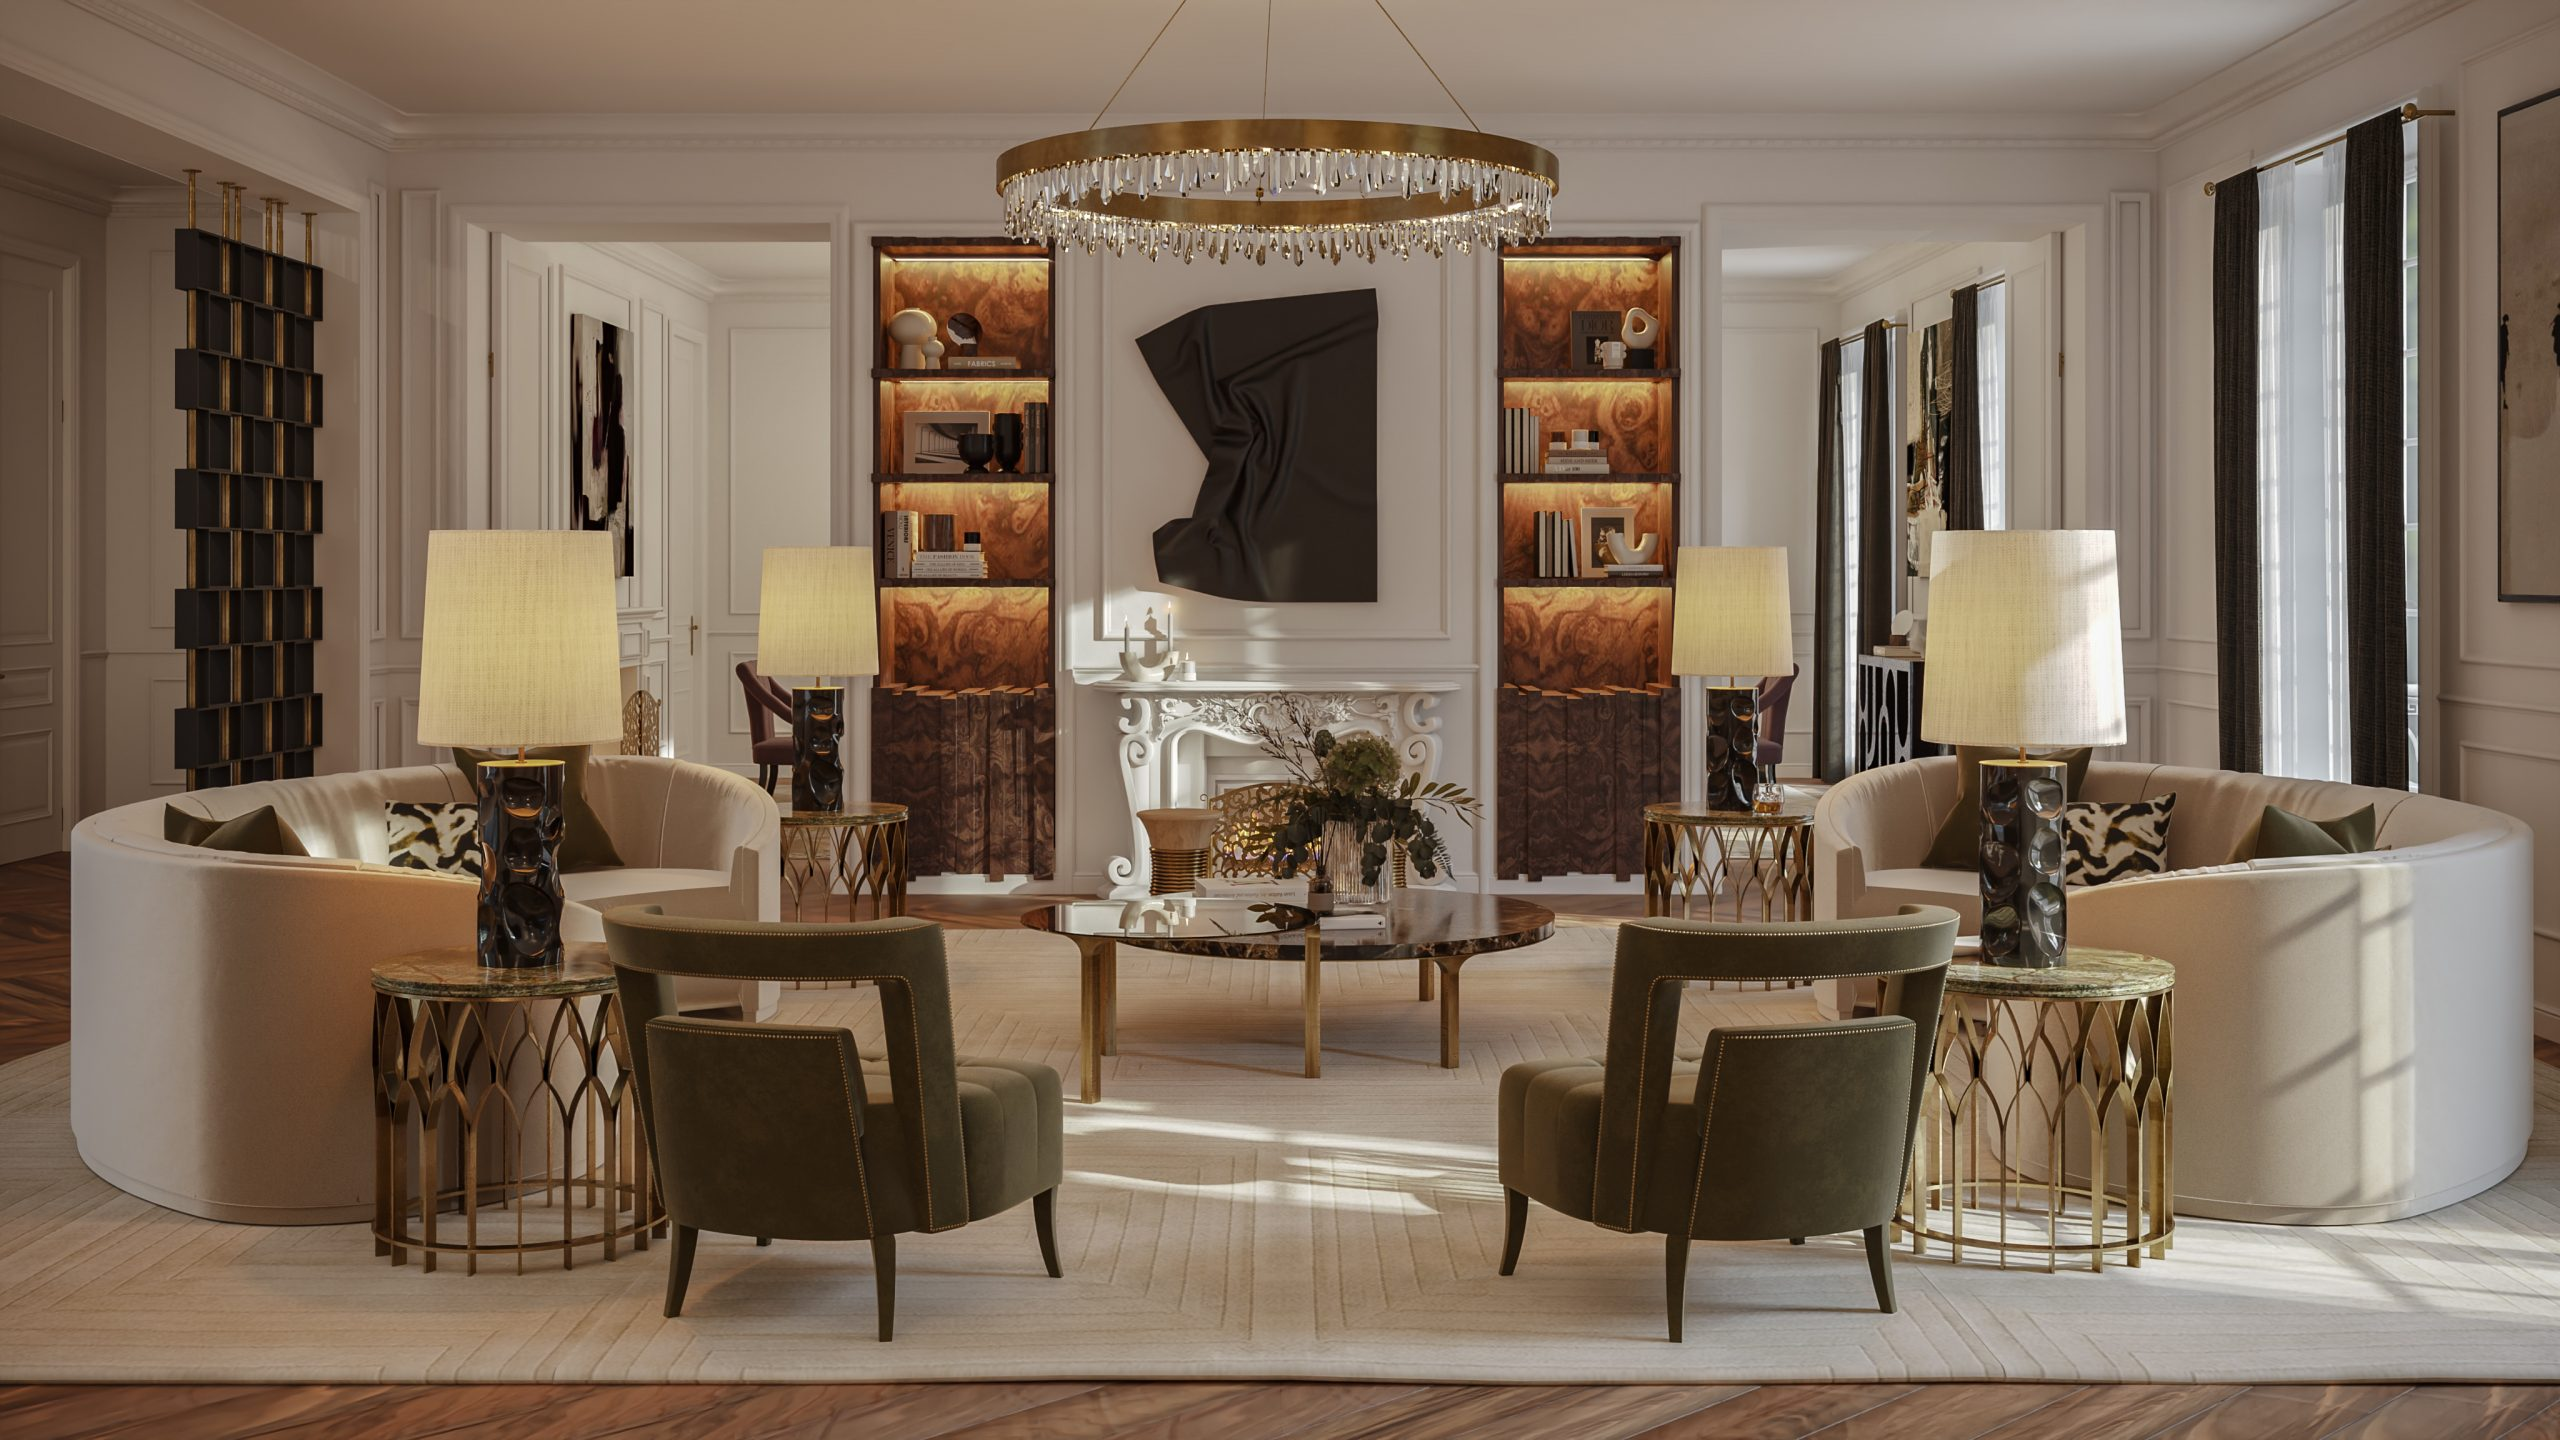 Oasis Living Room oasis living room Oasis Living Room: A Perfect Retreat at The Eternel Parisian Apartment Home Society Paris House Living Room scaled